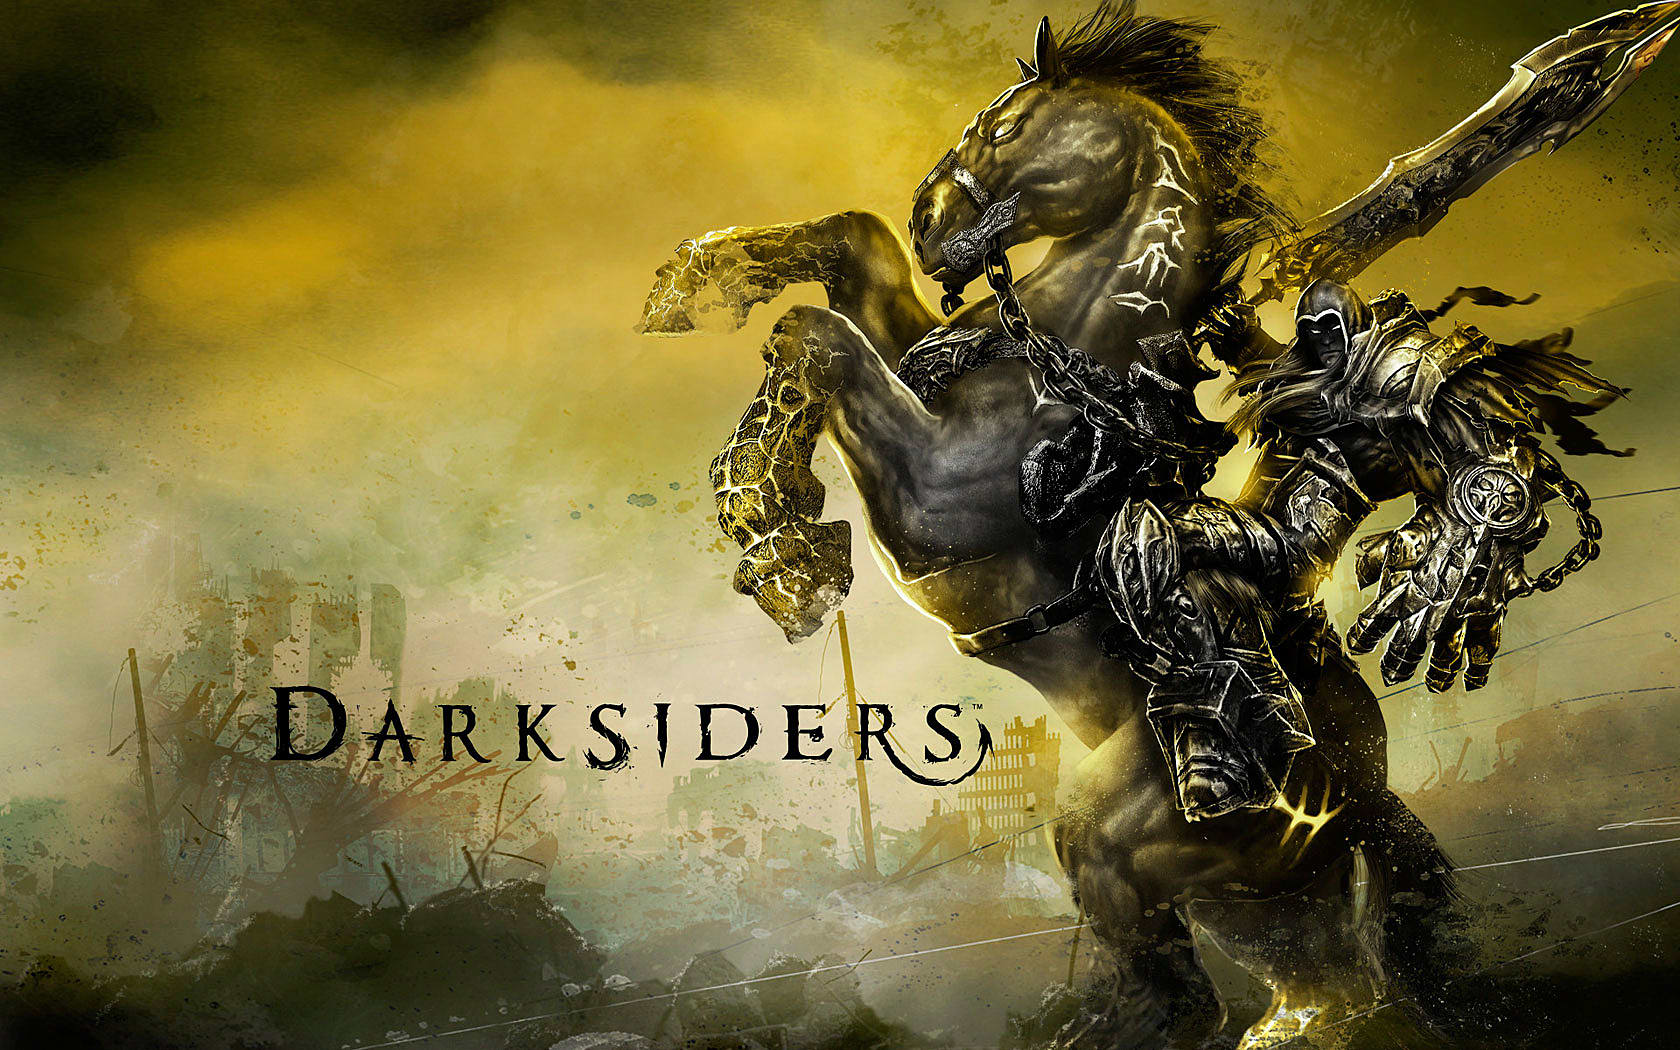 what we want to see in darksiders 3 | darksiders 3 | darksiders 2